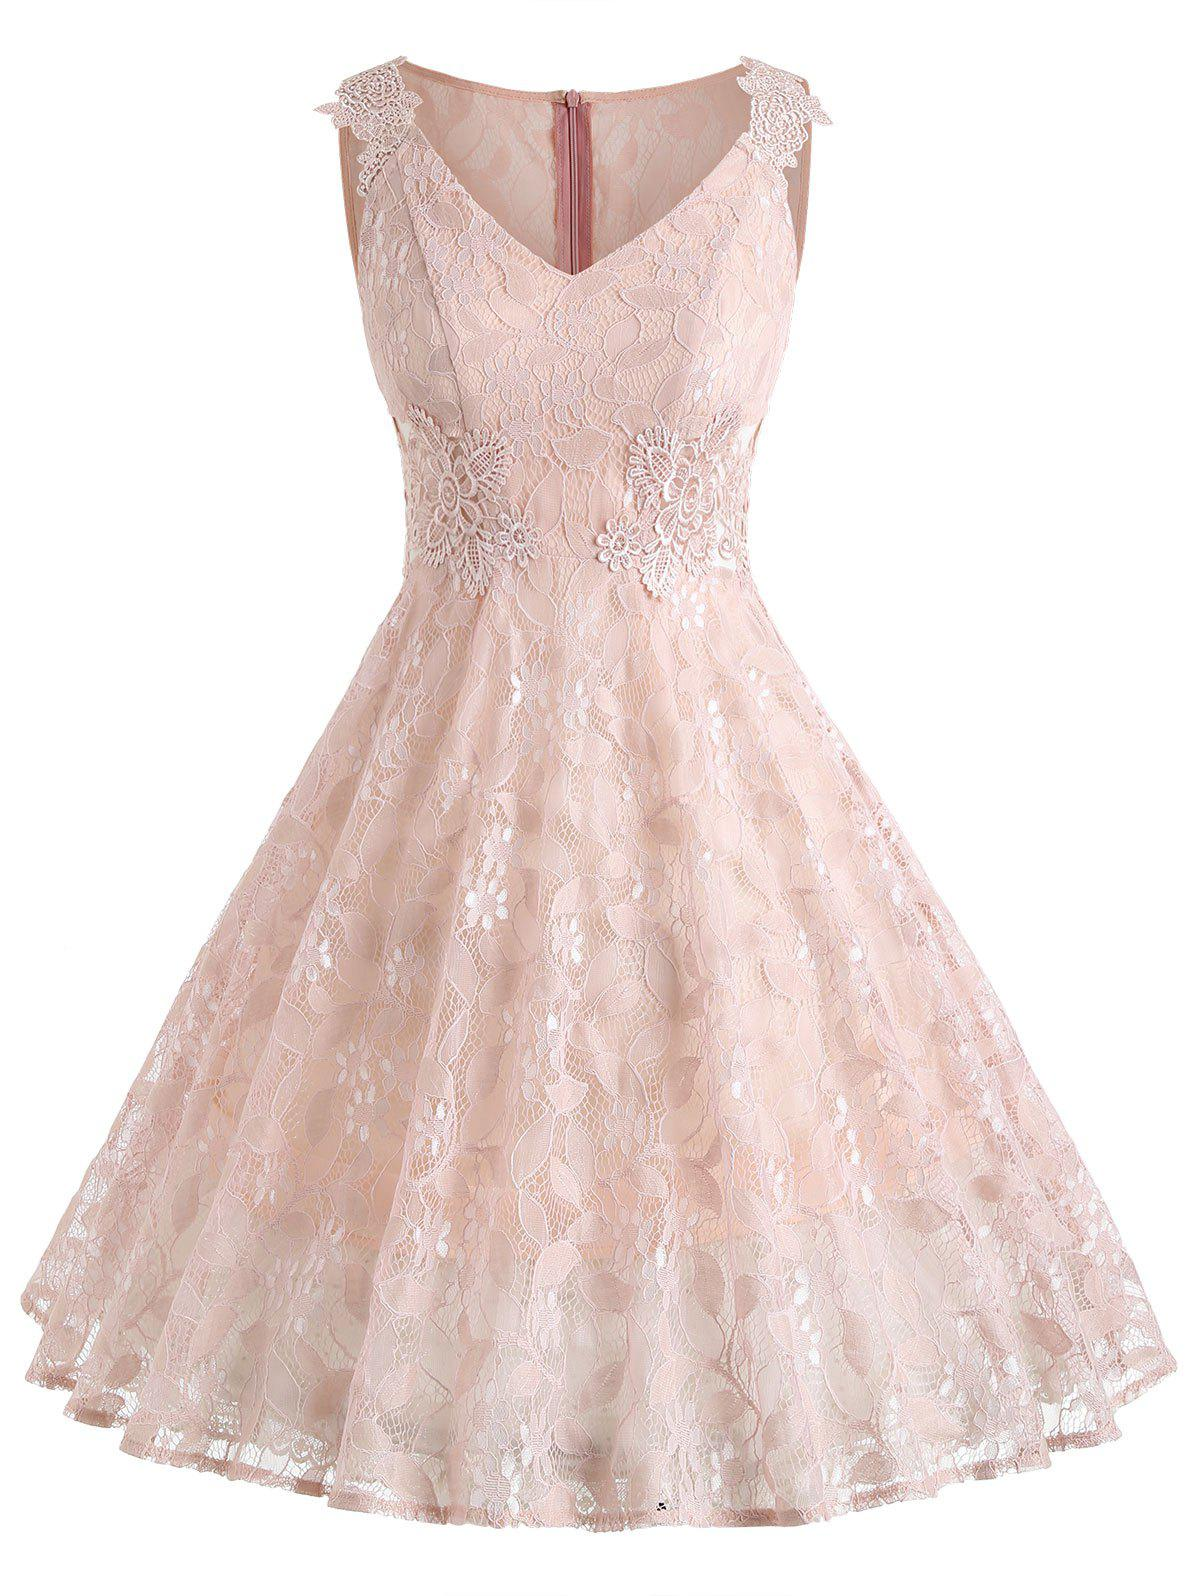 Best V Neck Floral Lace A Line Dress